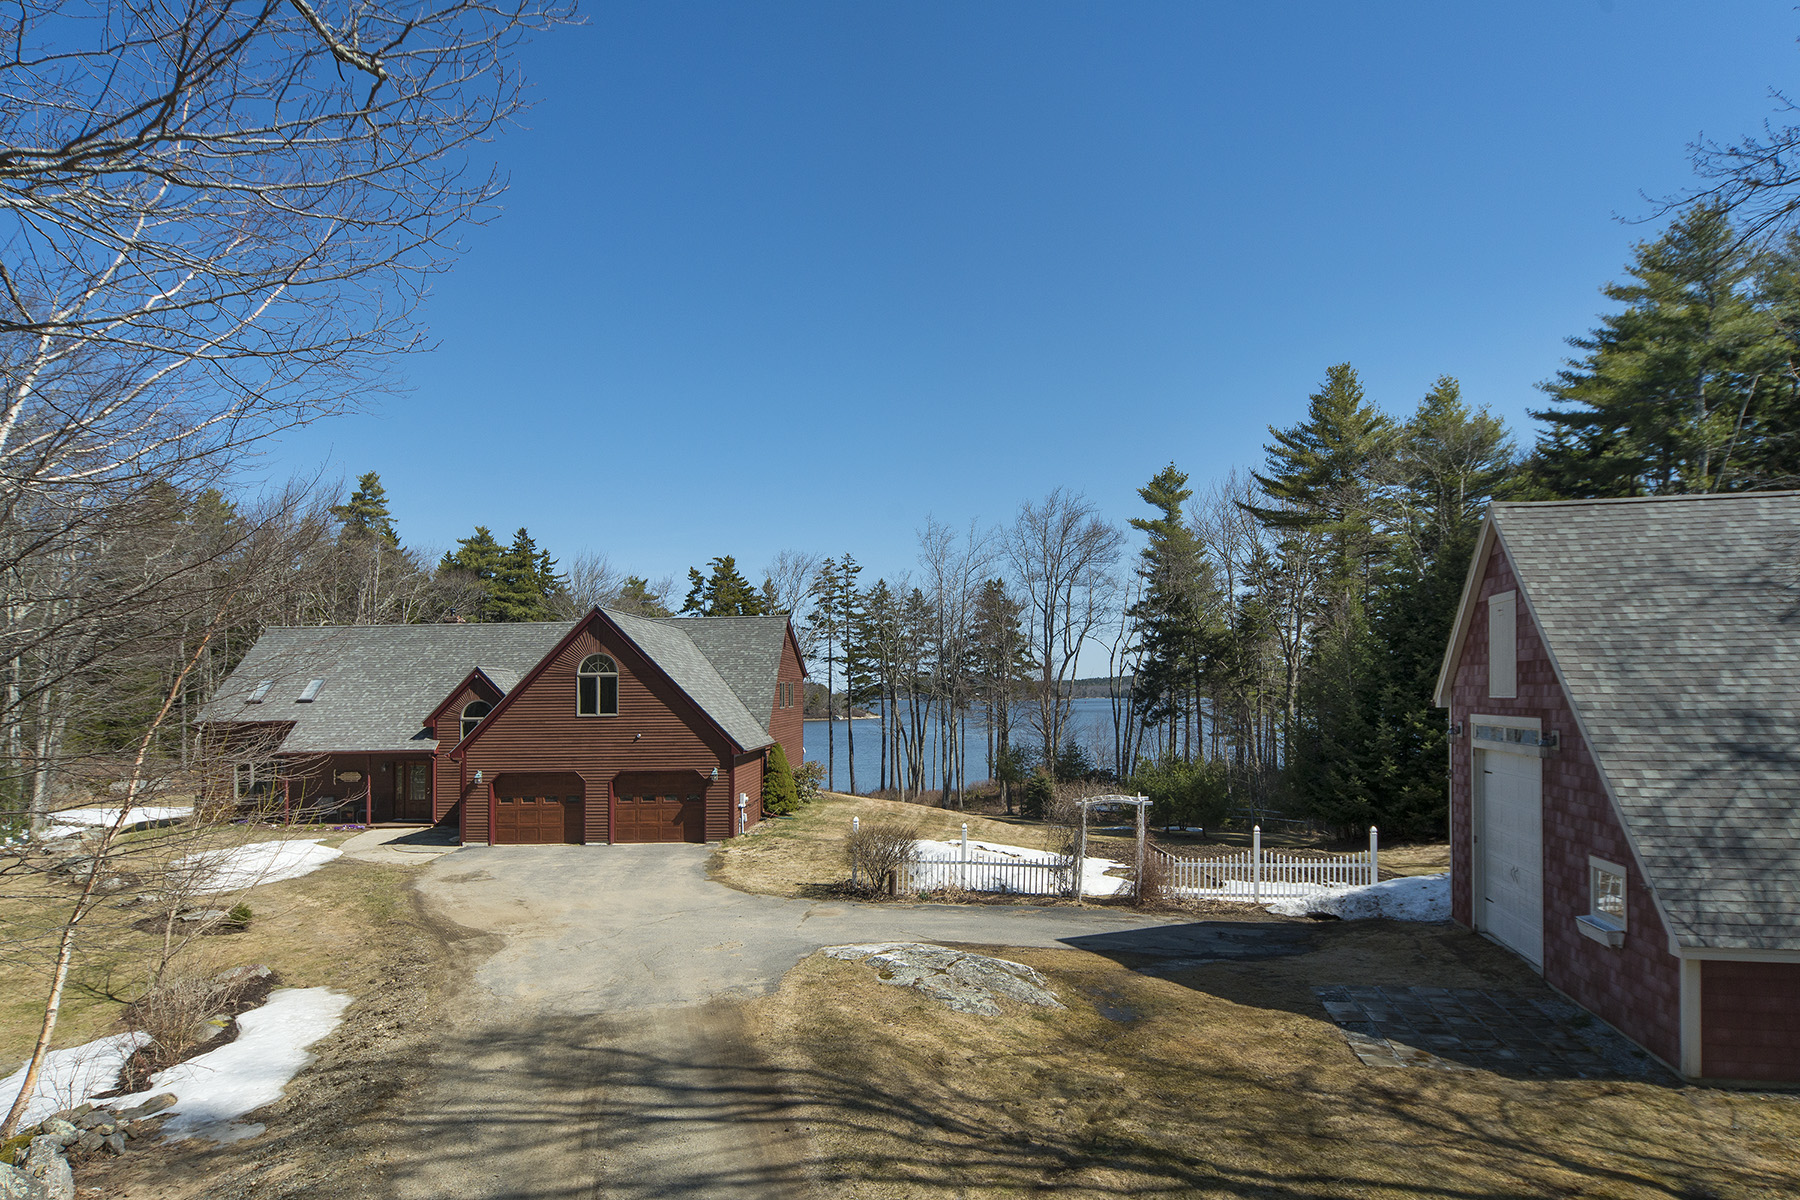 Single Family Home for Sale at 26 Rockland Rest Drive Phippsburg, Maine 04562 United States